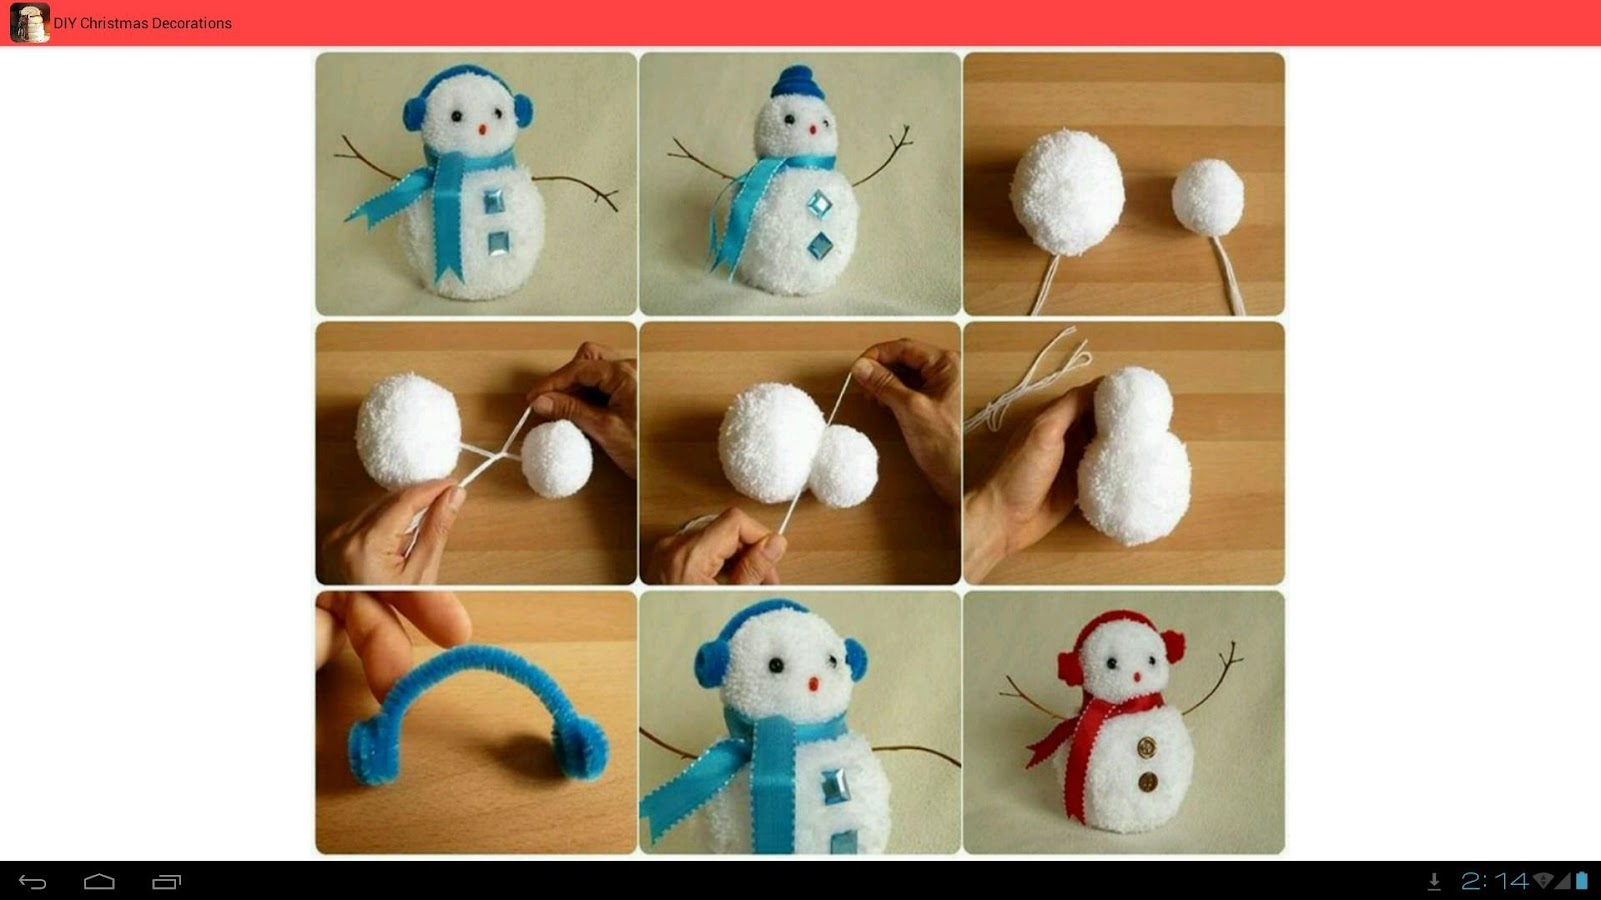 Diy christmas decorations android apps on google play for Homemade xmas decorations